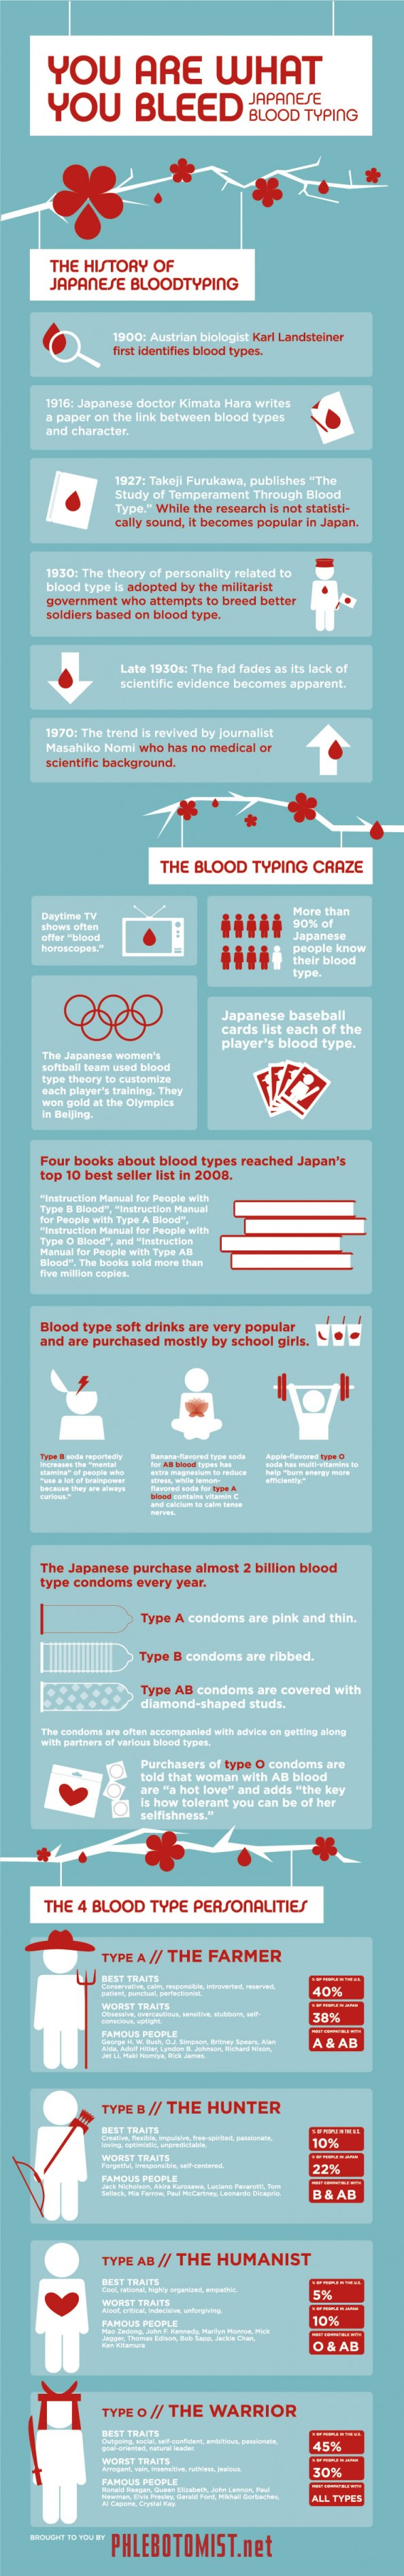 History of Japanese Blood Typing (infographic) | Blood